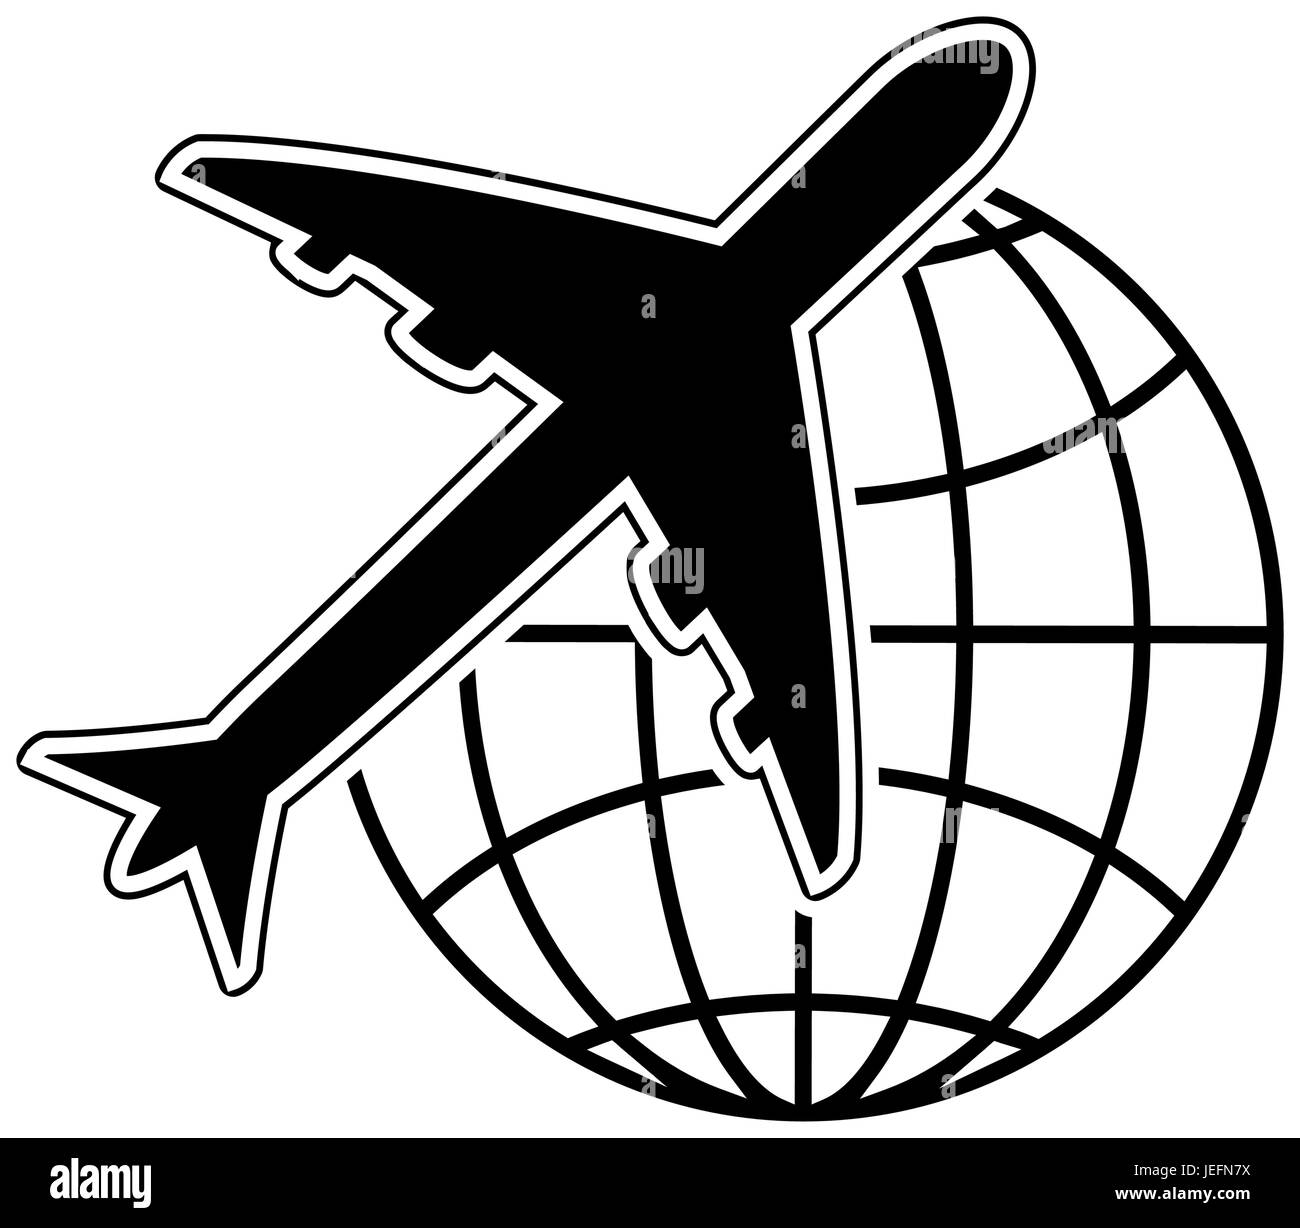 airplane and global sphere icon - Stock Image